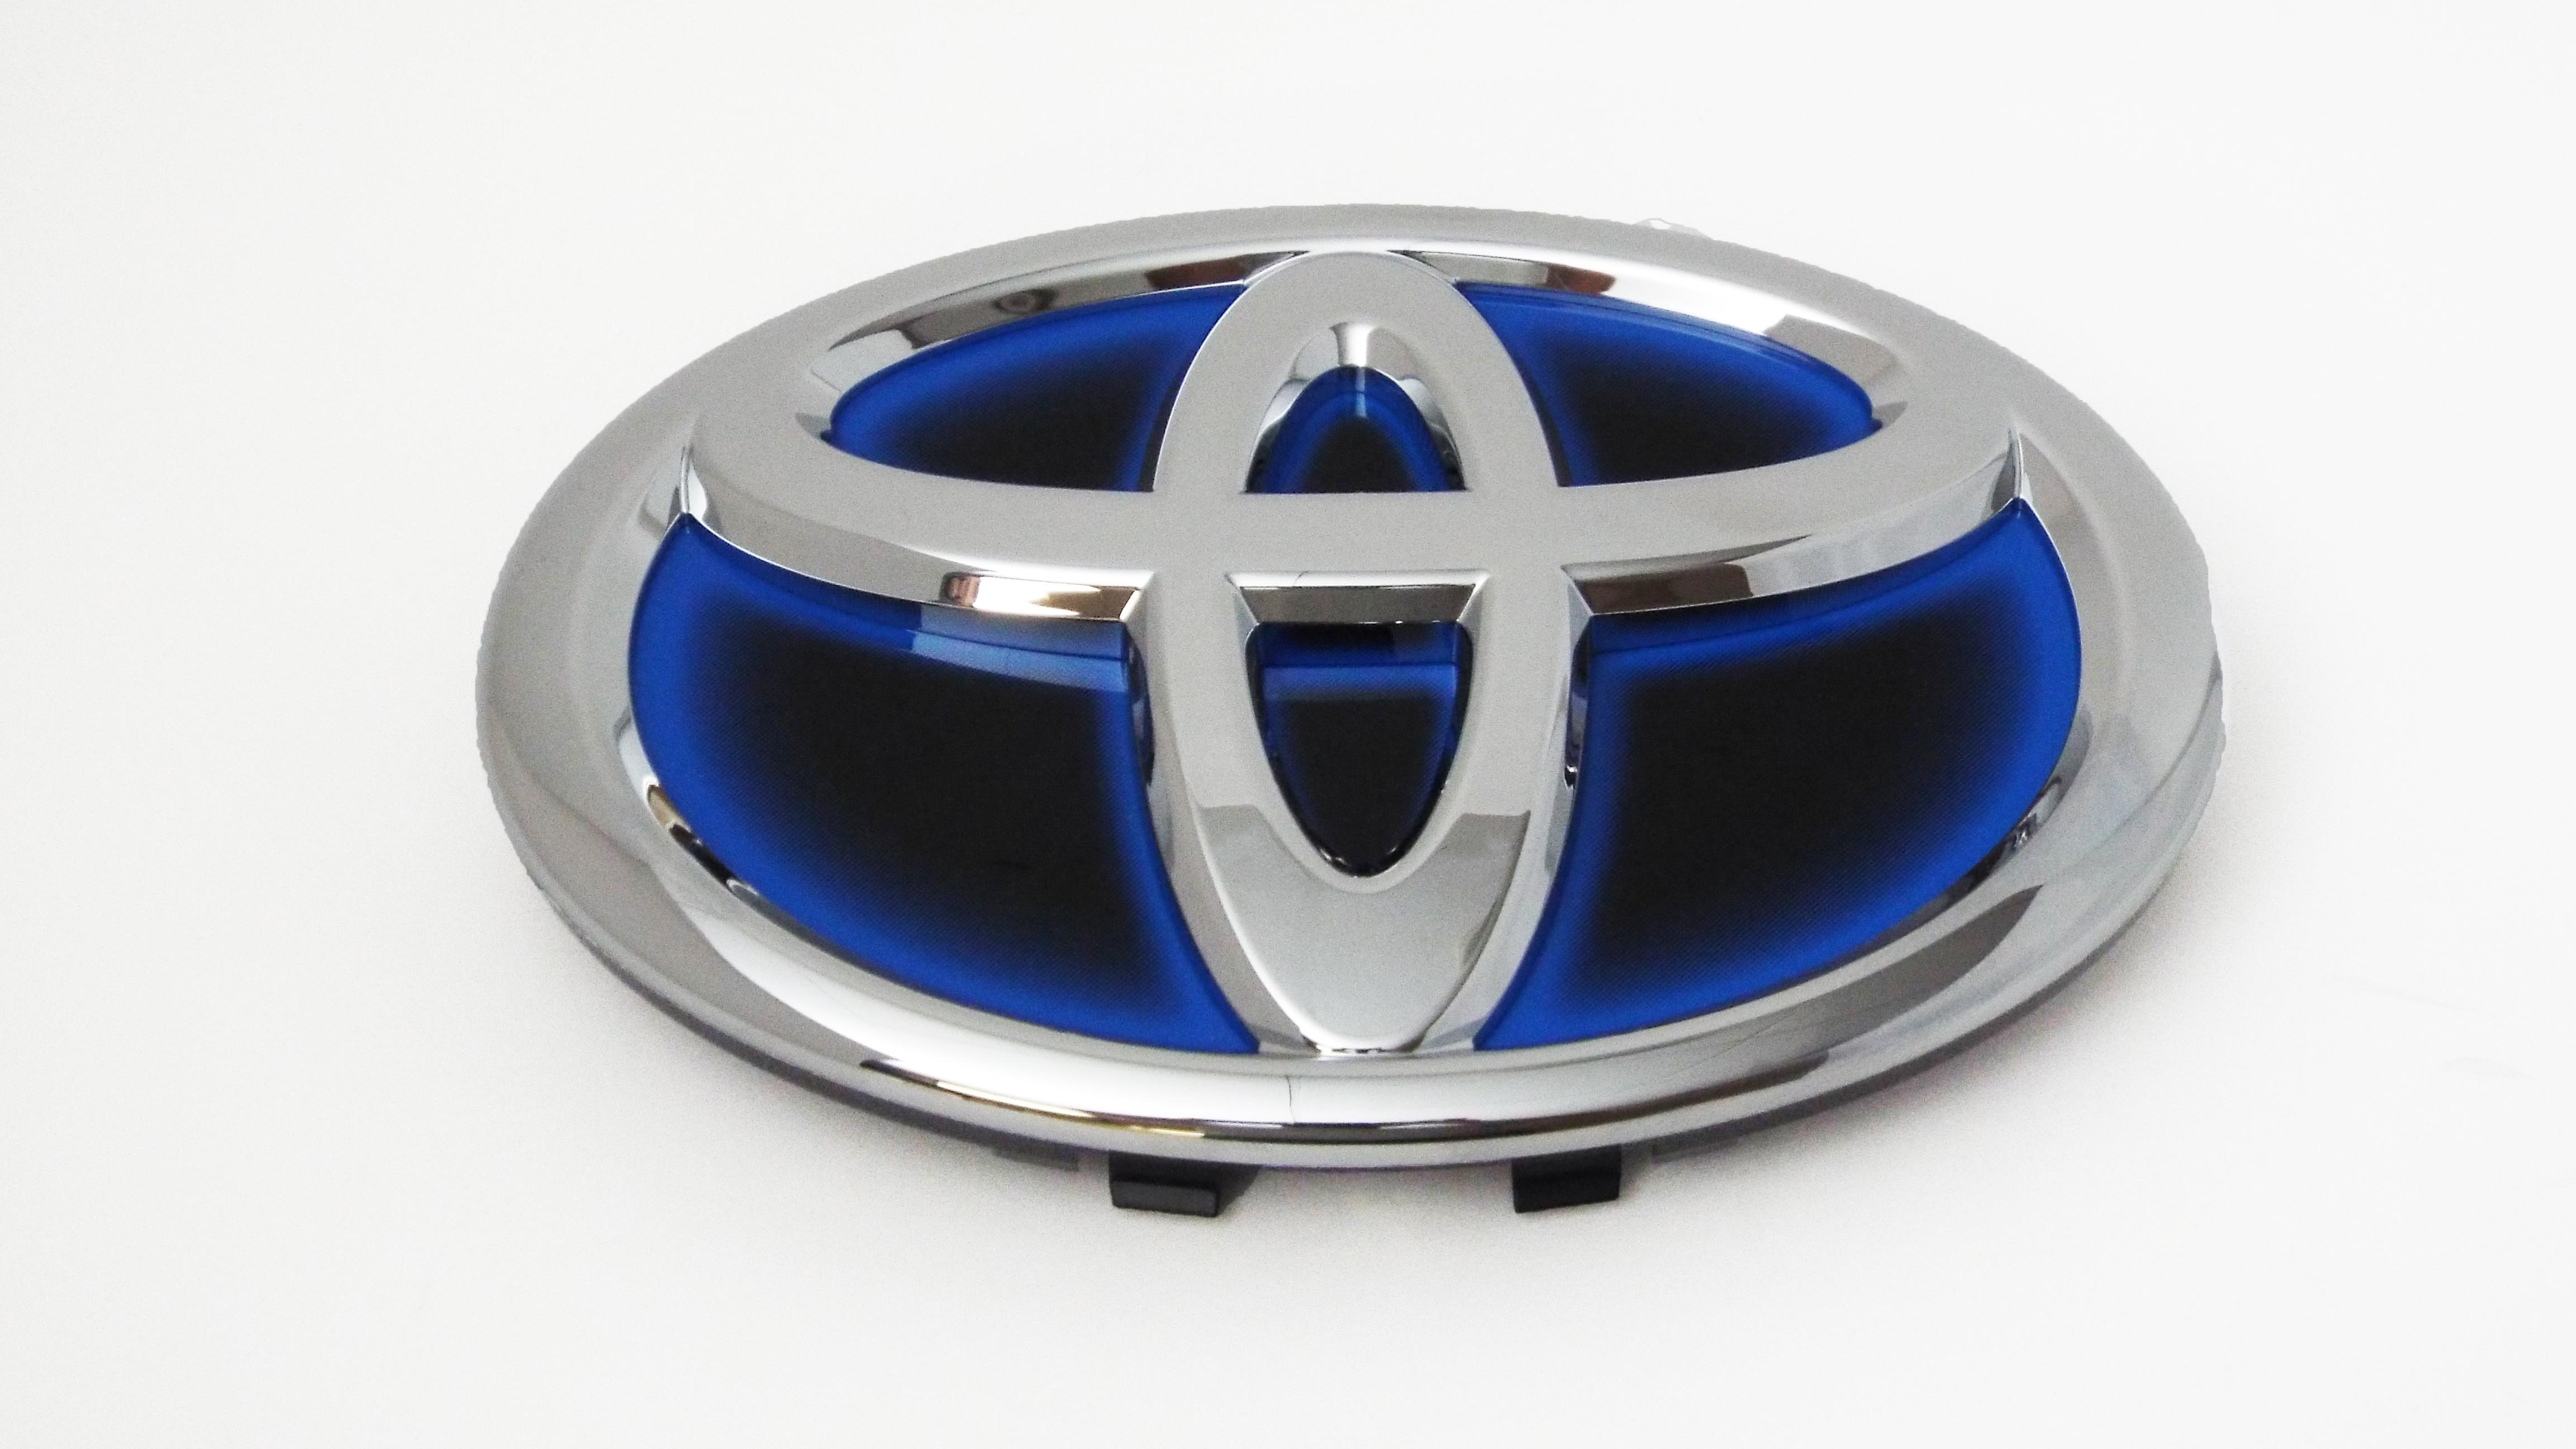 2013 toyota camry grille emblem front interior body - 2013 toyota camry interior parts ...